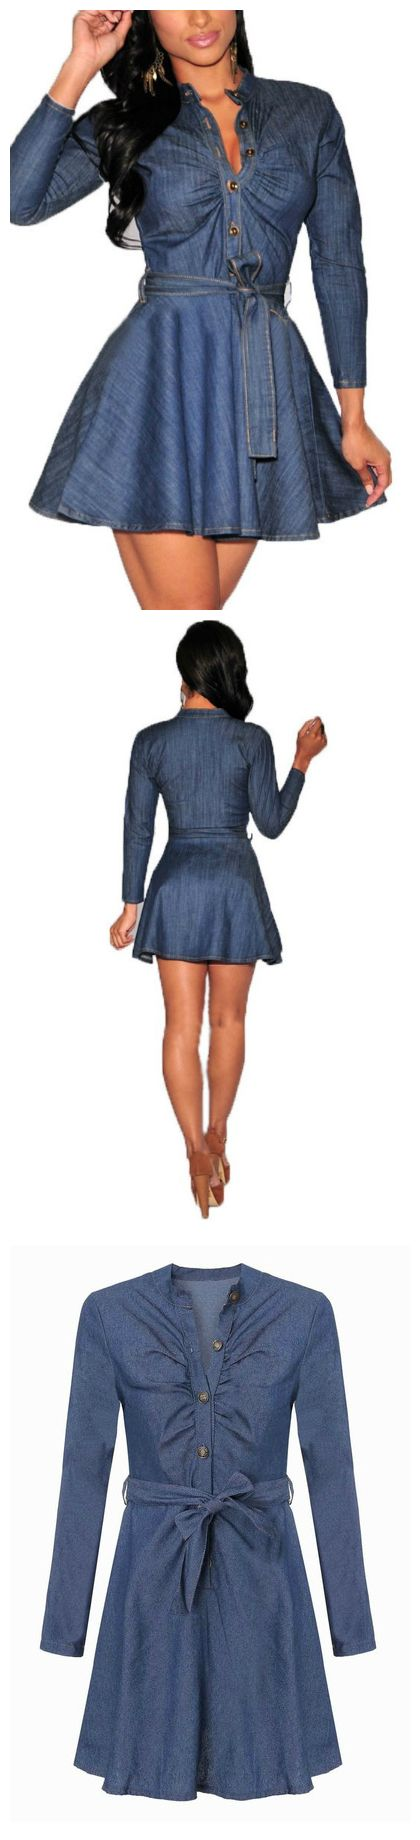 Denim dresses gives you the smart yet classy look.